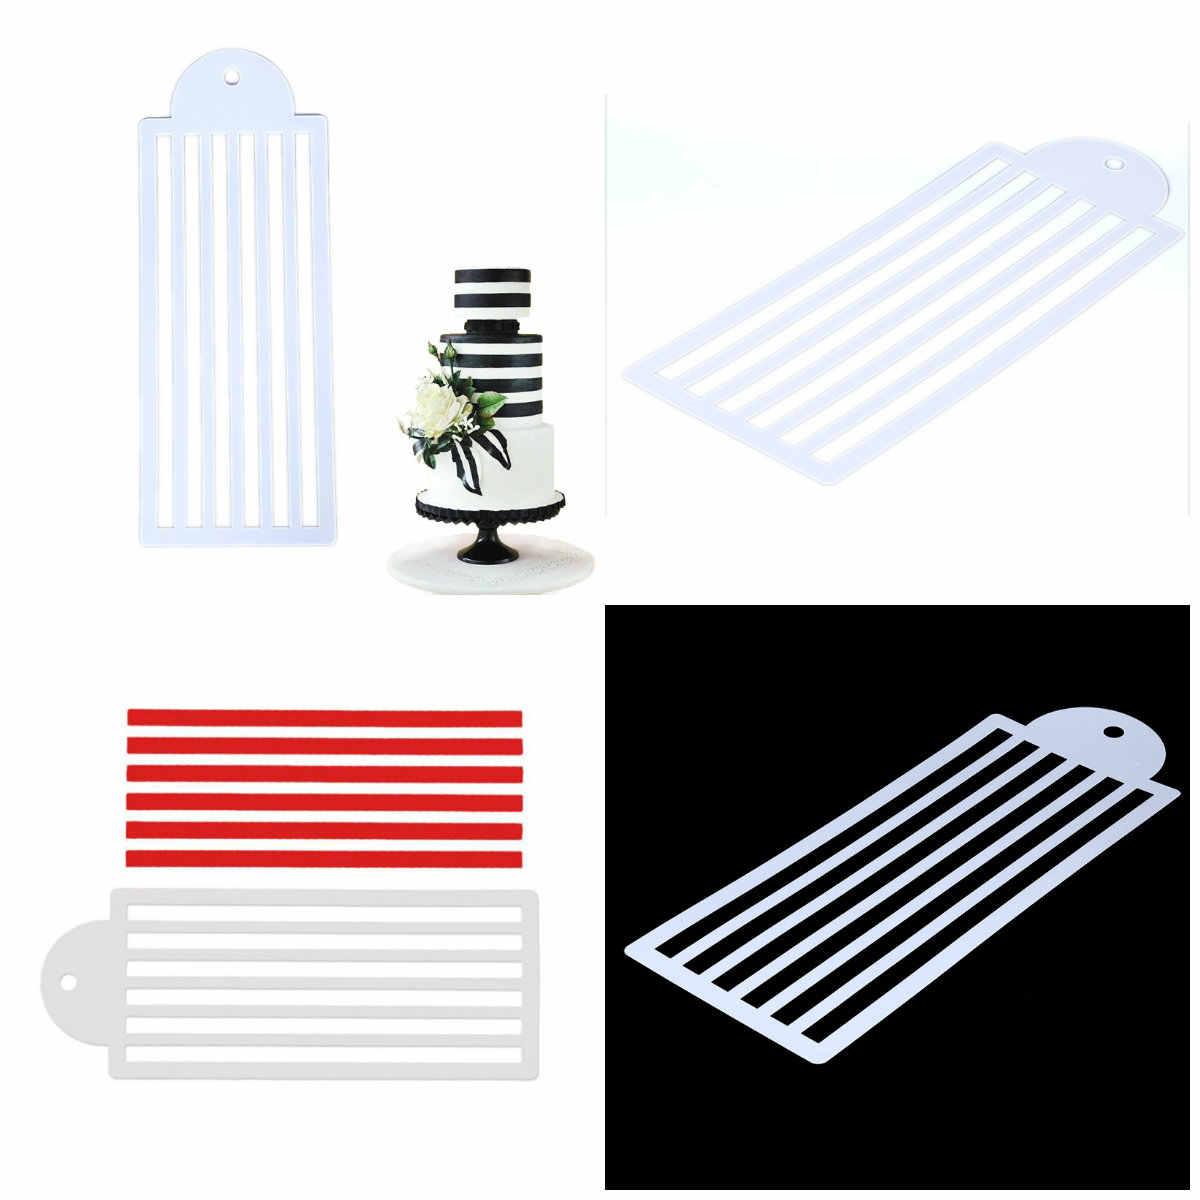 Bottle Fondant Bakeware Tools Stripe Lace Stencil Wedding Cake Design Plastic Template Mold Painting Stencil Decorating